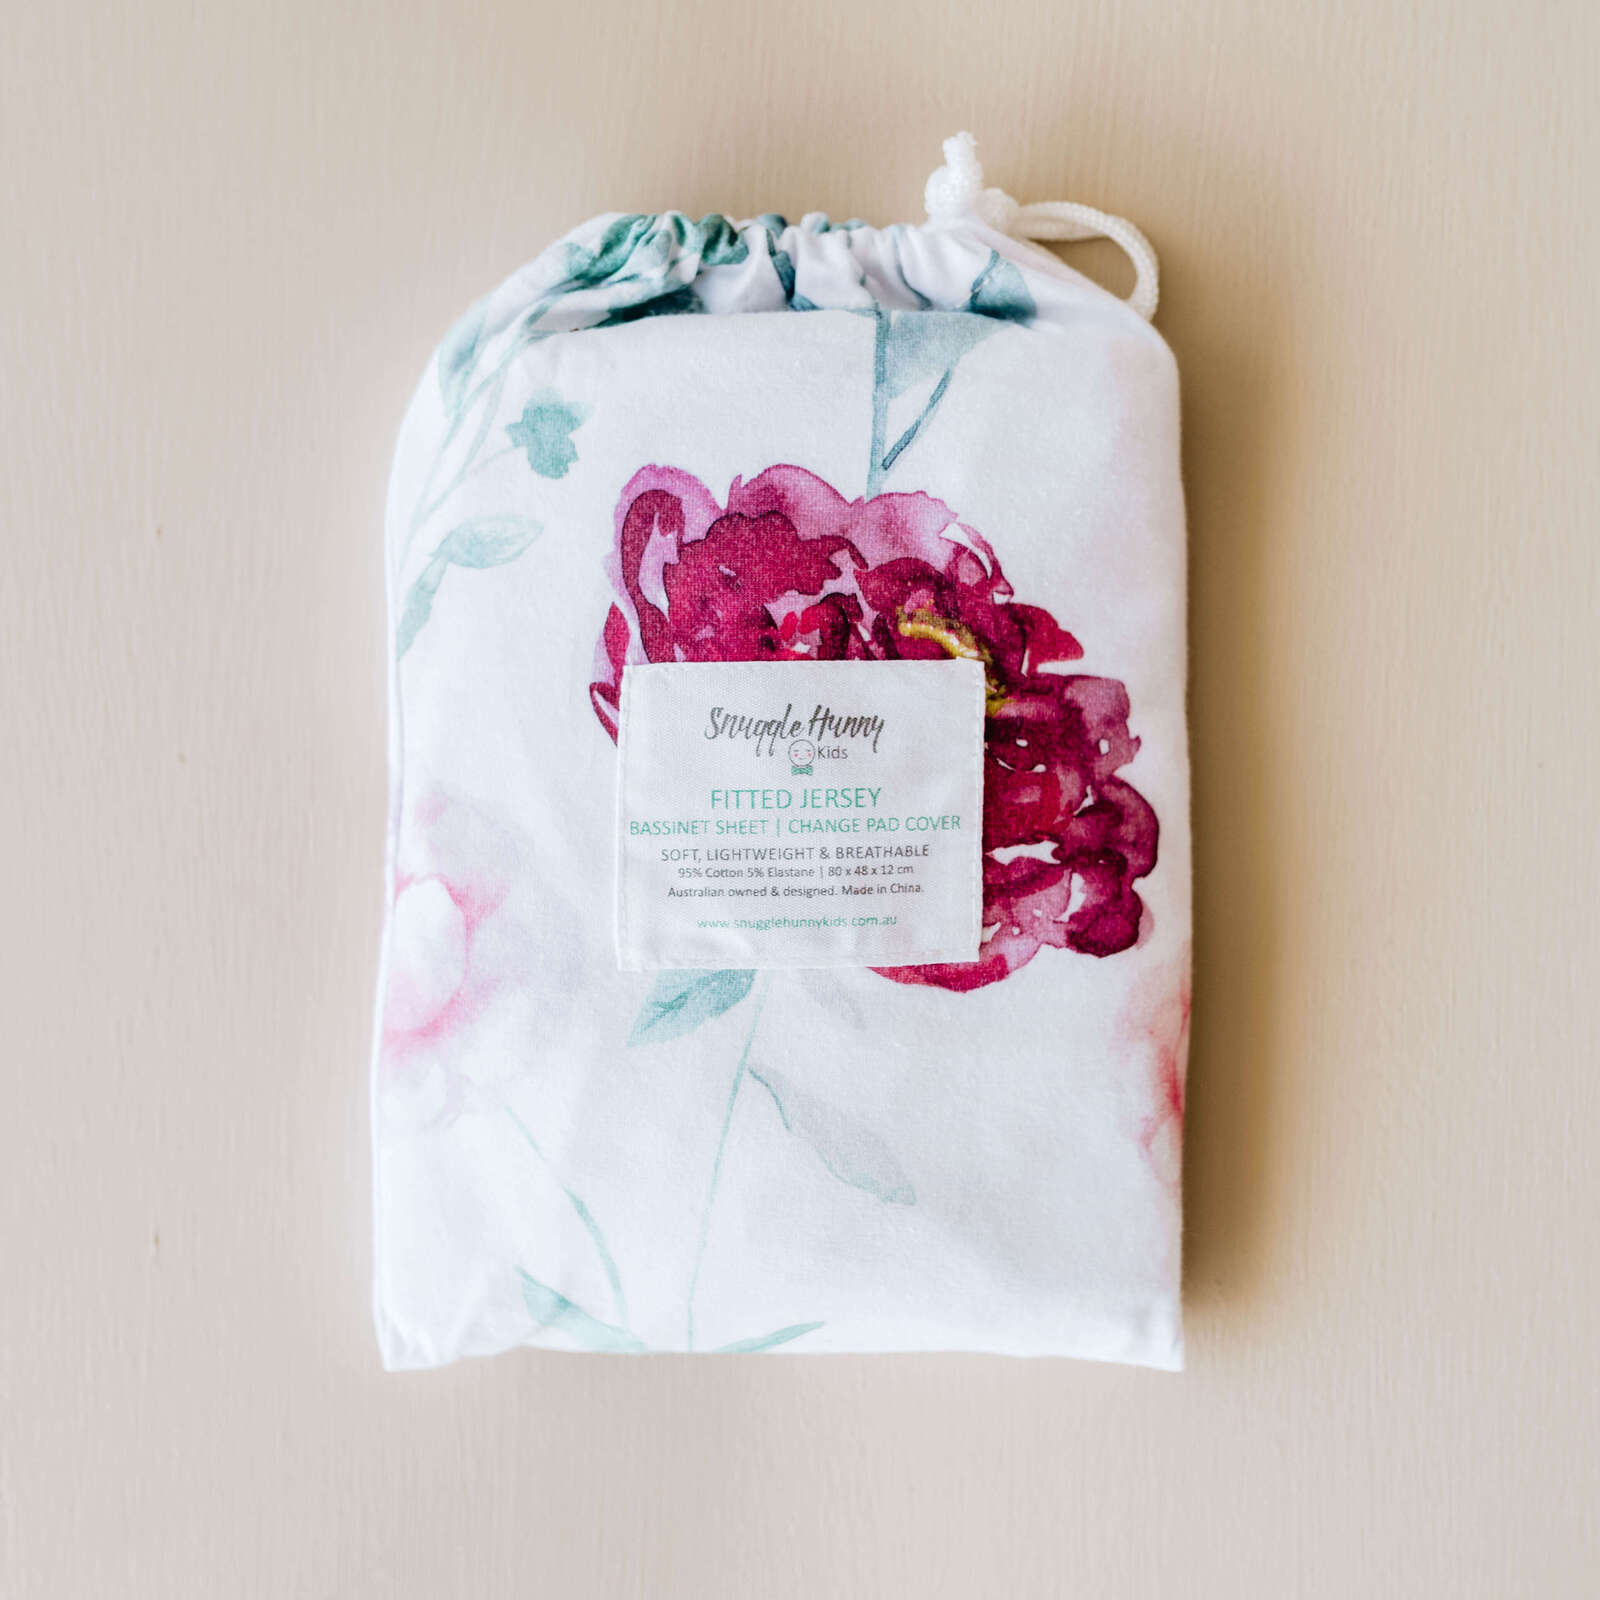 SNUGGLE HUNNY - Wanderlust | Bassinet Sheet / Change Pad Cover